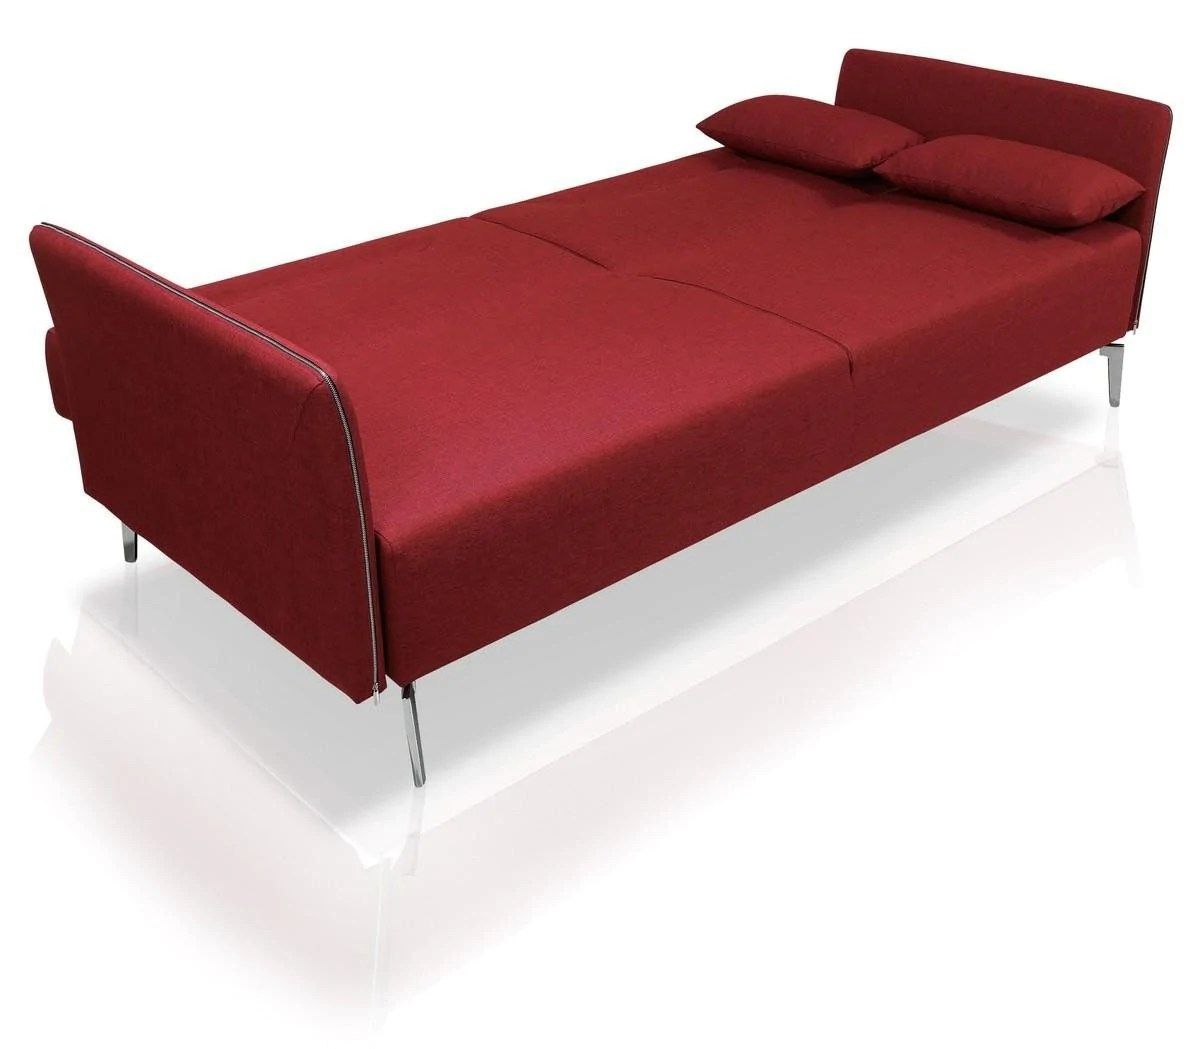 Single Sofa Beds Vig Furniture Vgmb1365 Divani Casa Davenport Mid Century Modern Red Fabric Sofa Bed Sale At Contemporary Furniture Warehouse Today Only